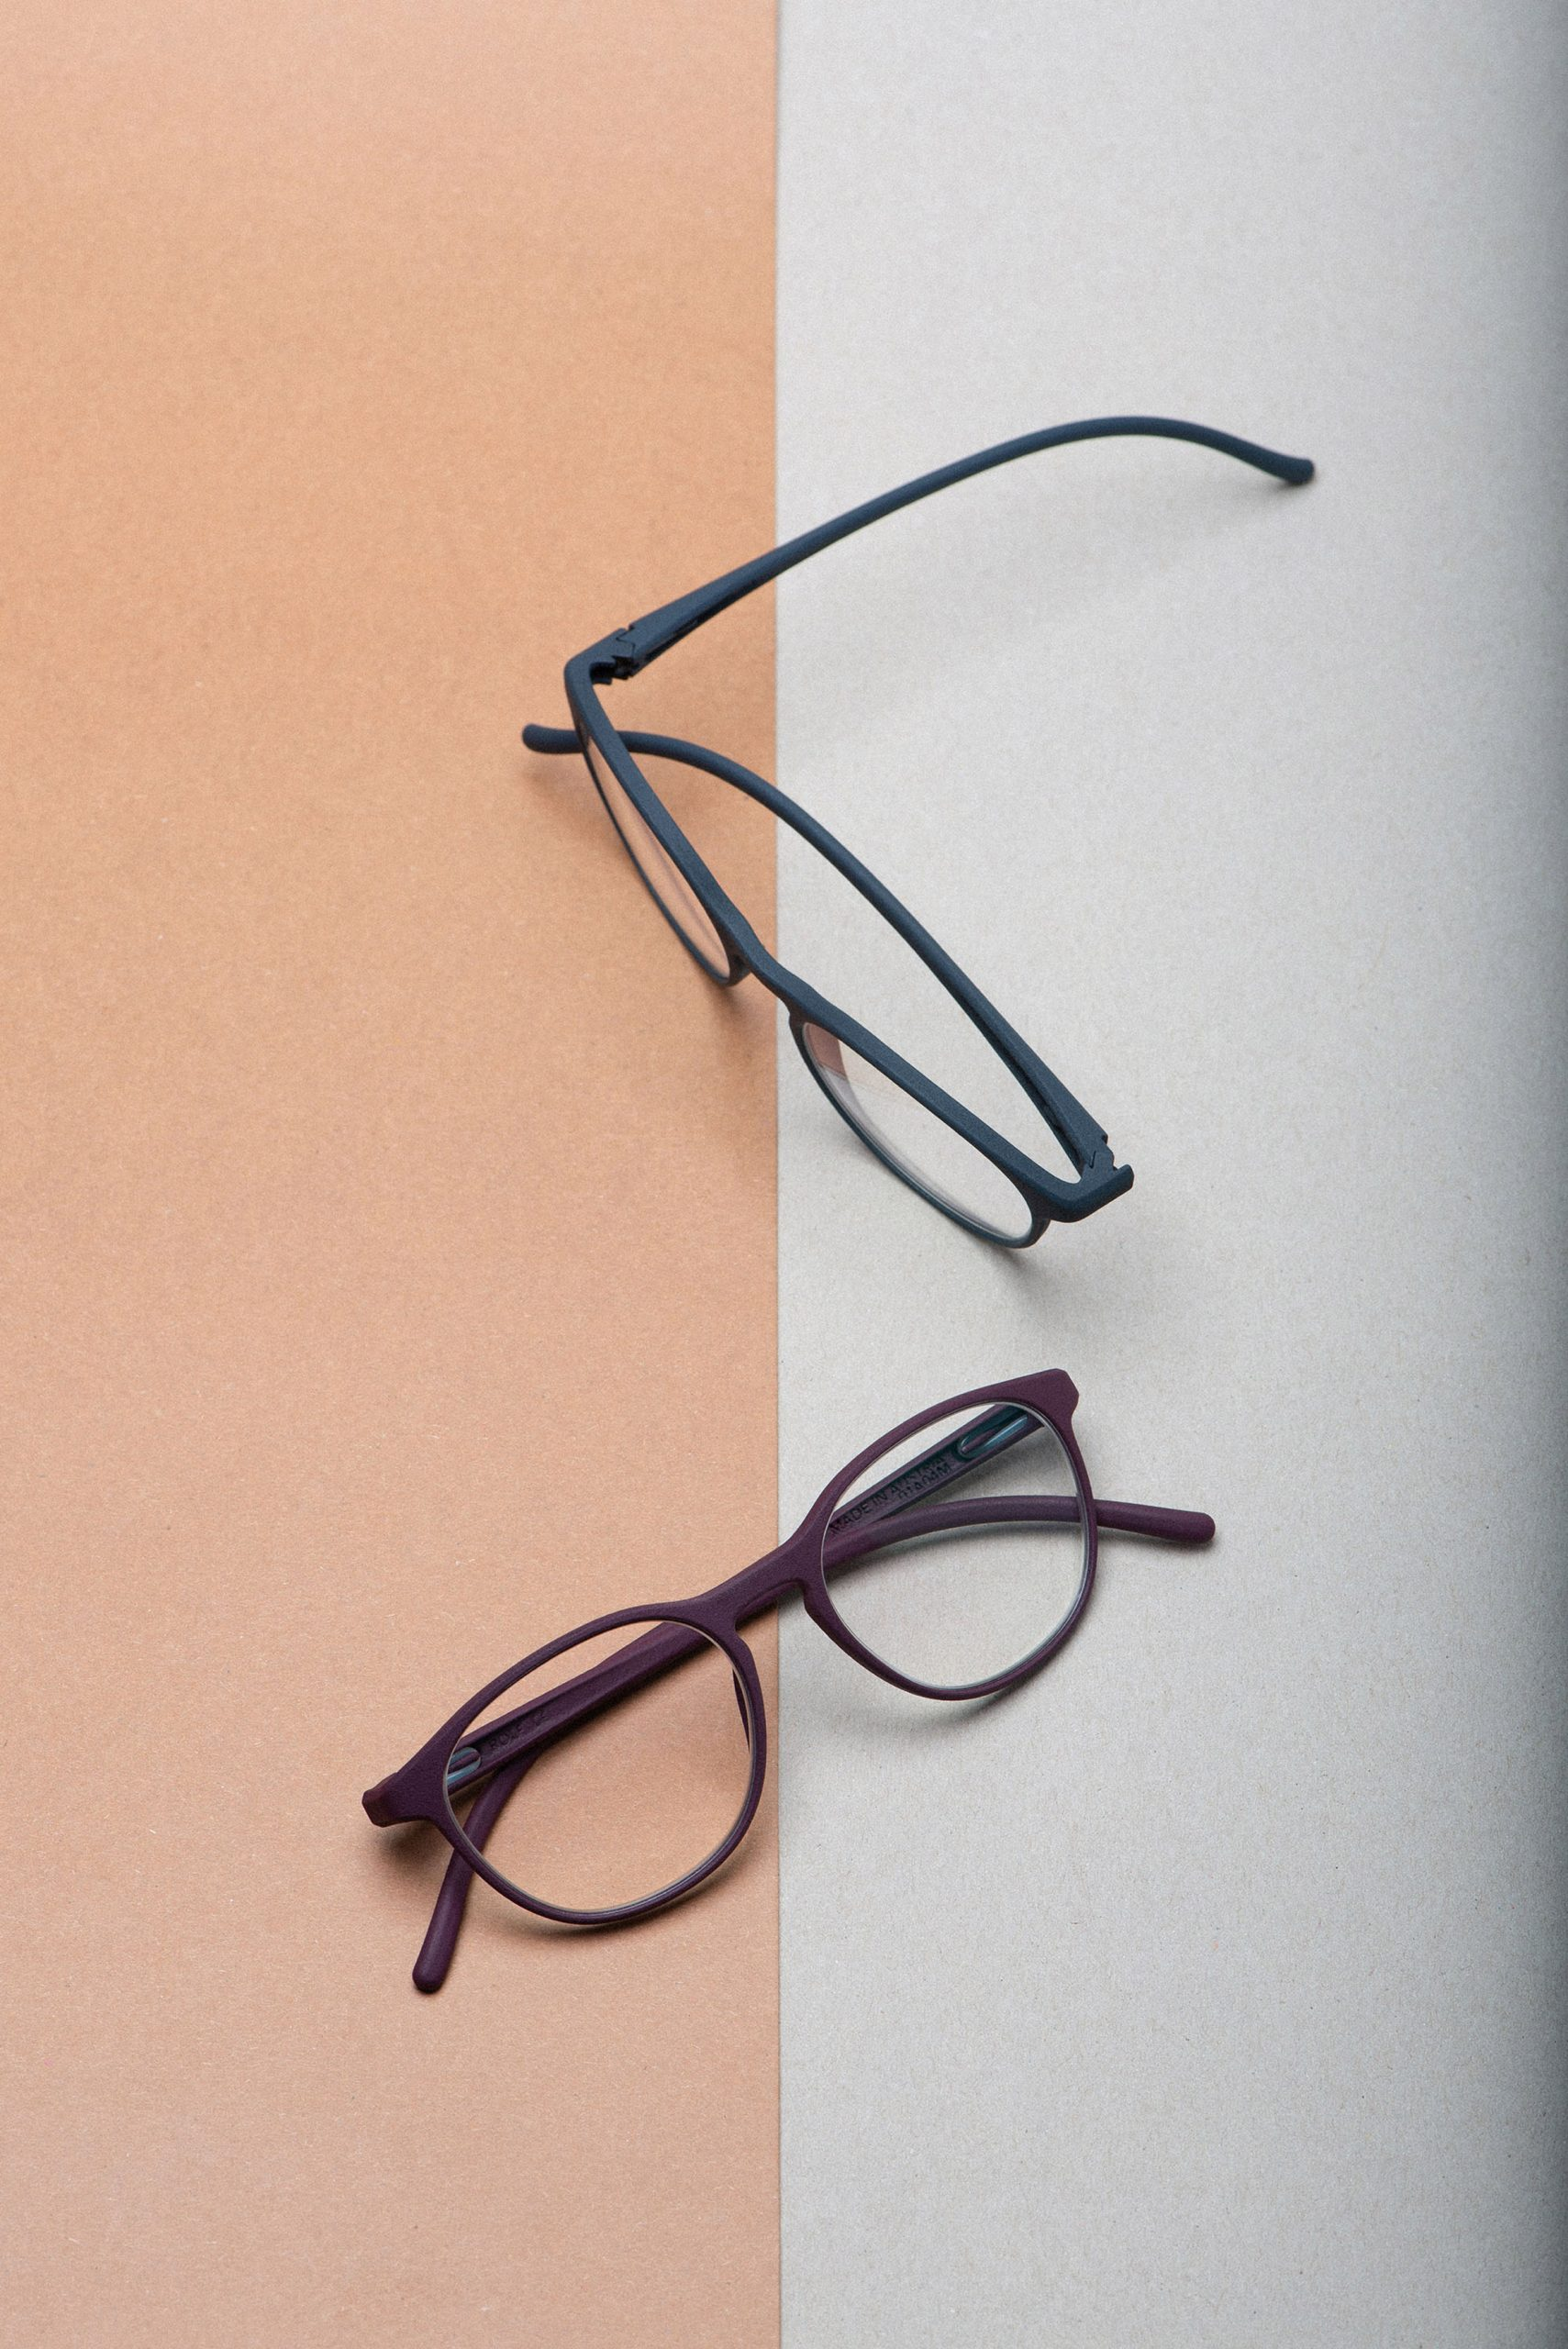 Substance glasses by Rolf